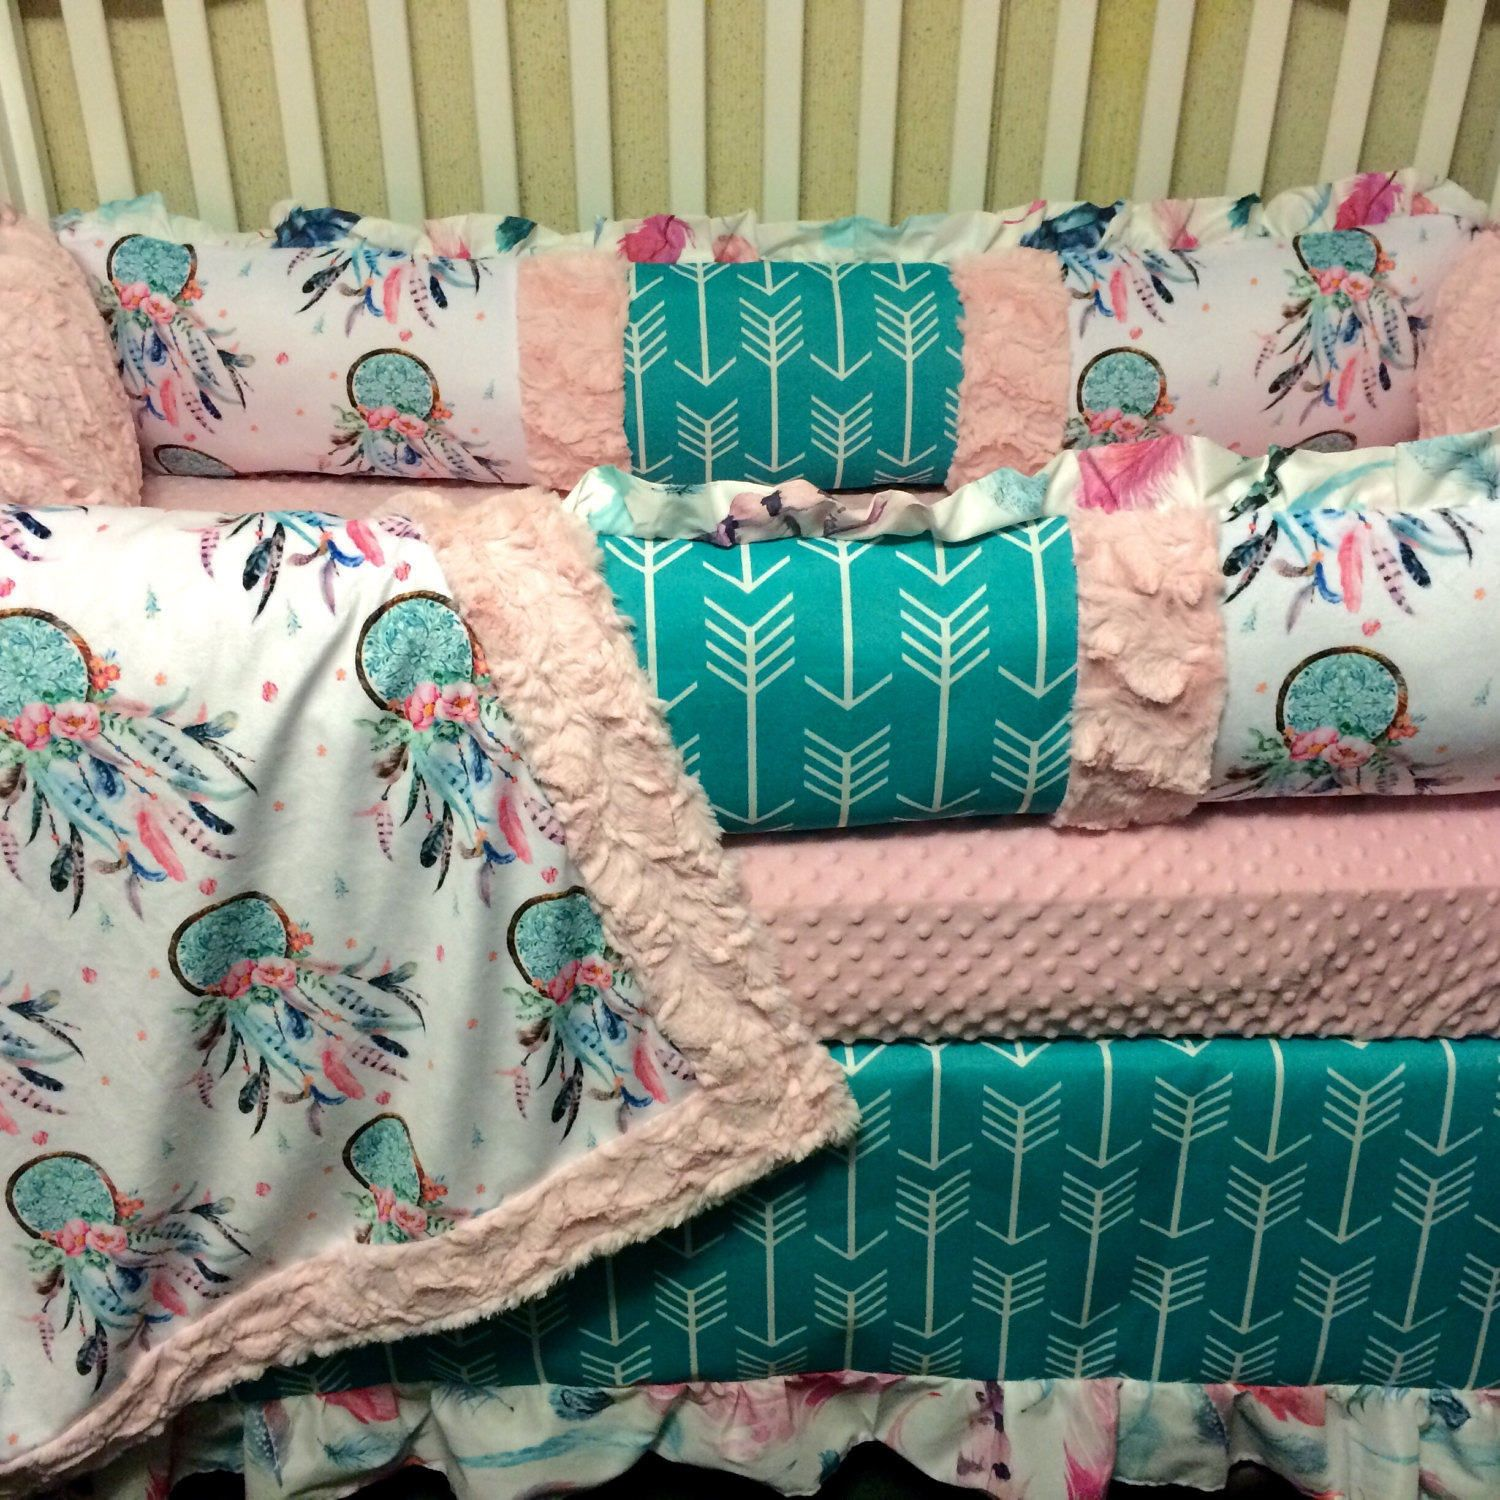 Dream Catcher Baby Bedding Simple Dream Catcher And Arrows Custom Baby Bedding With Pink And Teal Design Ideas